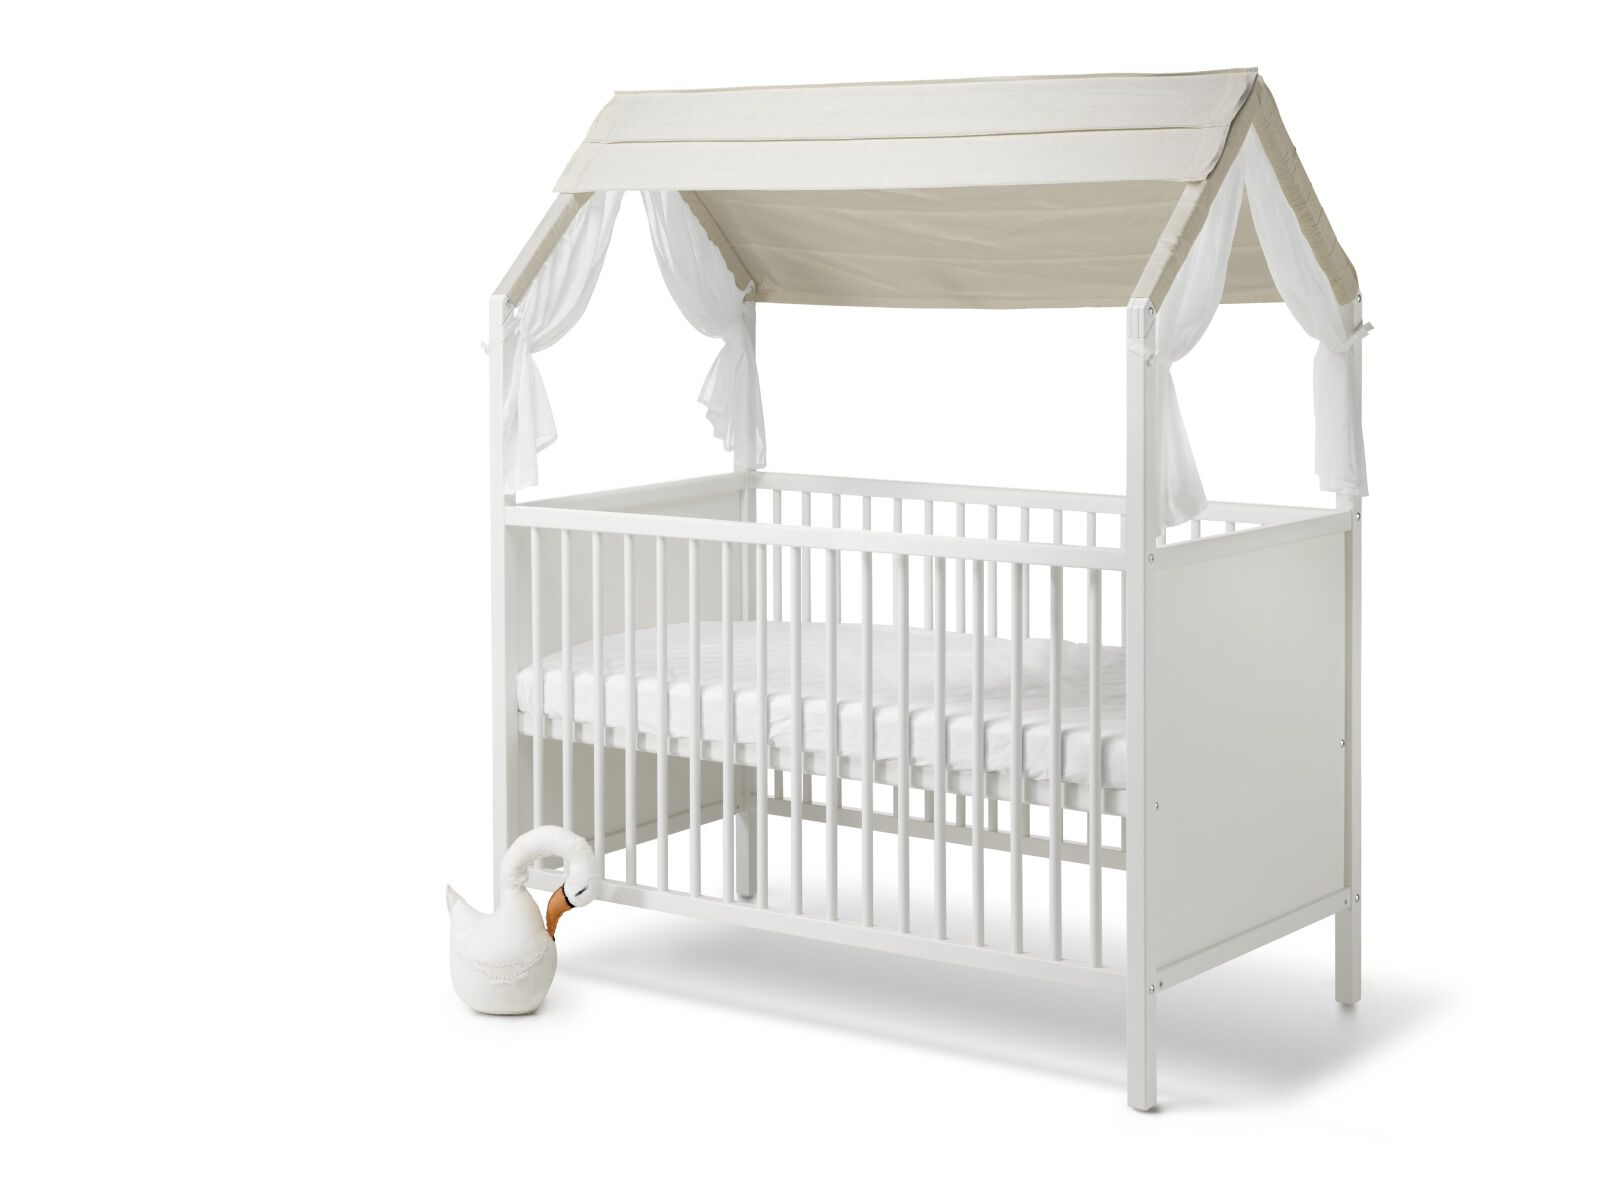 Baby Cradle Dimensions Stokke Home Bed House Cot Stokke